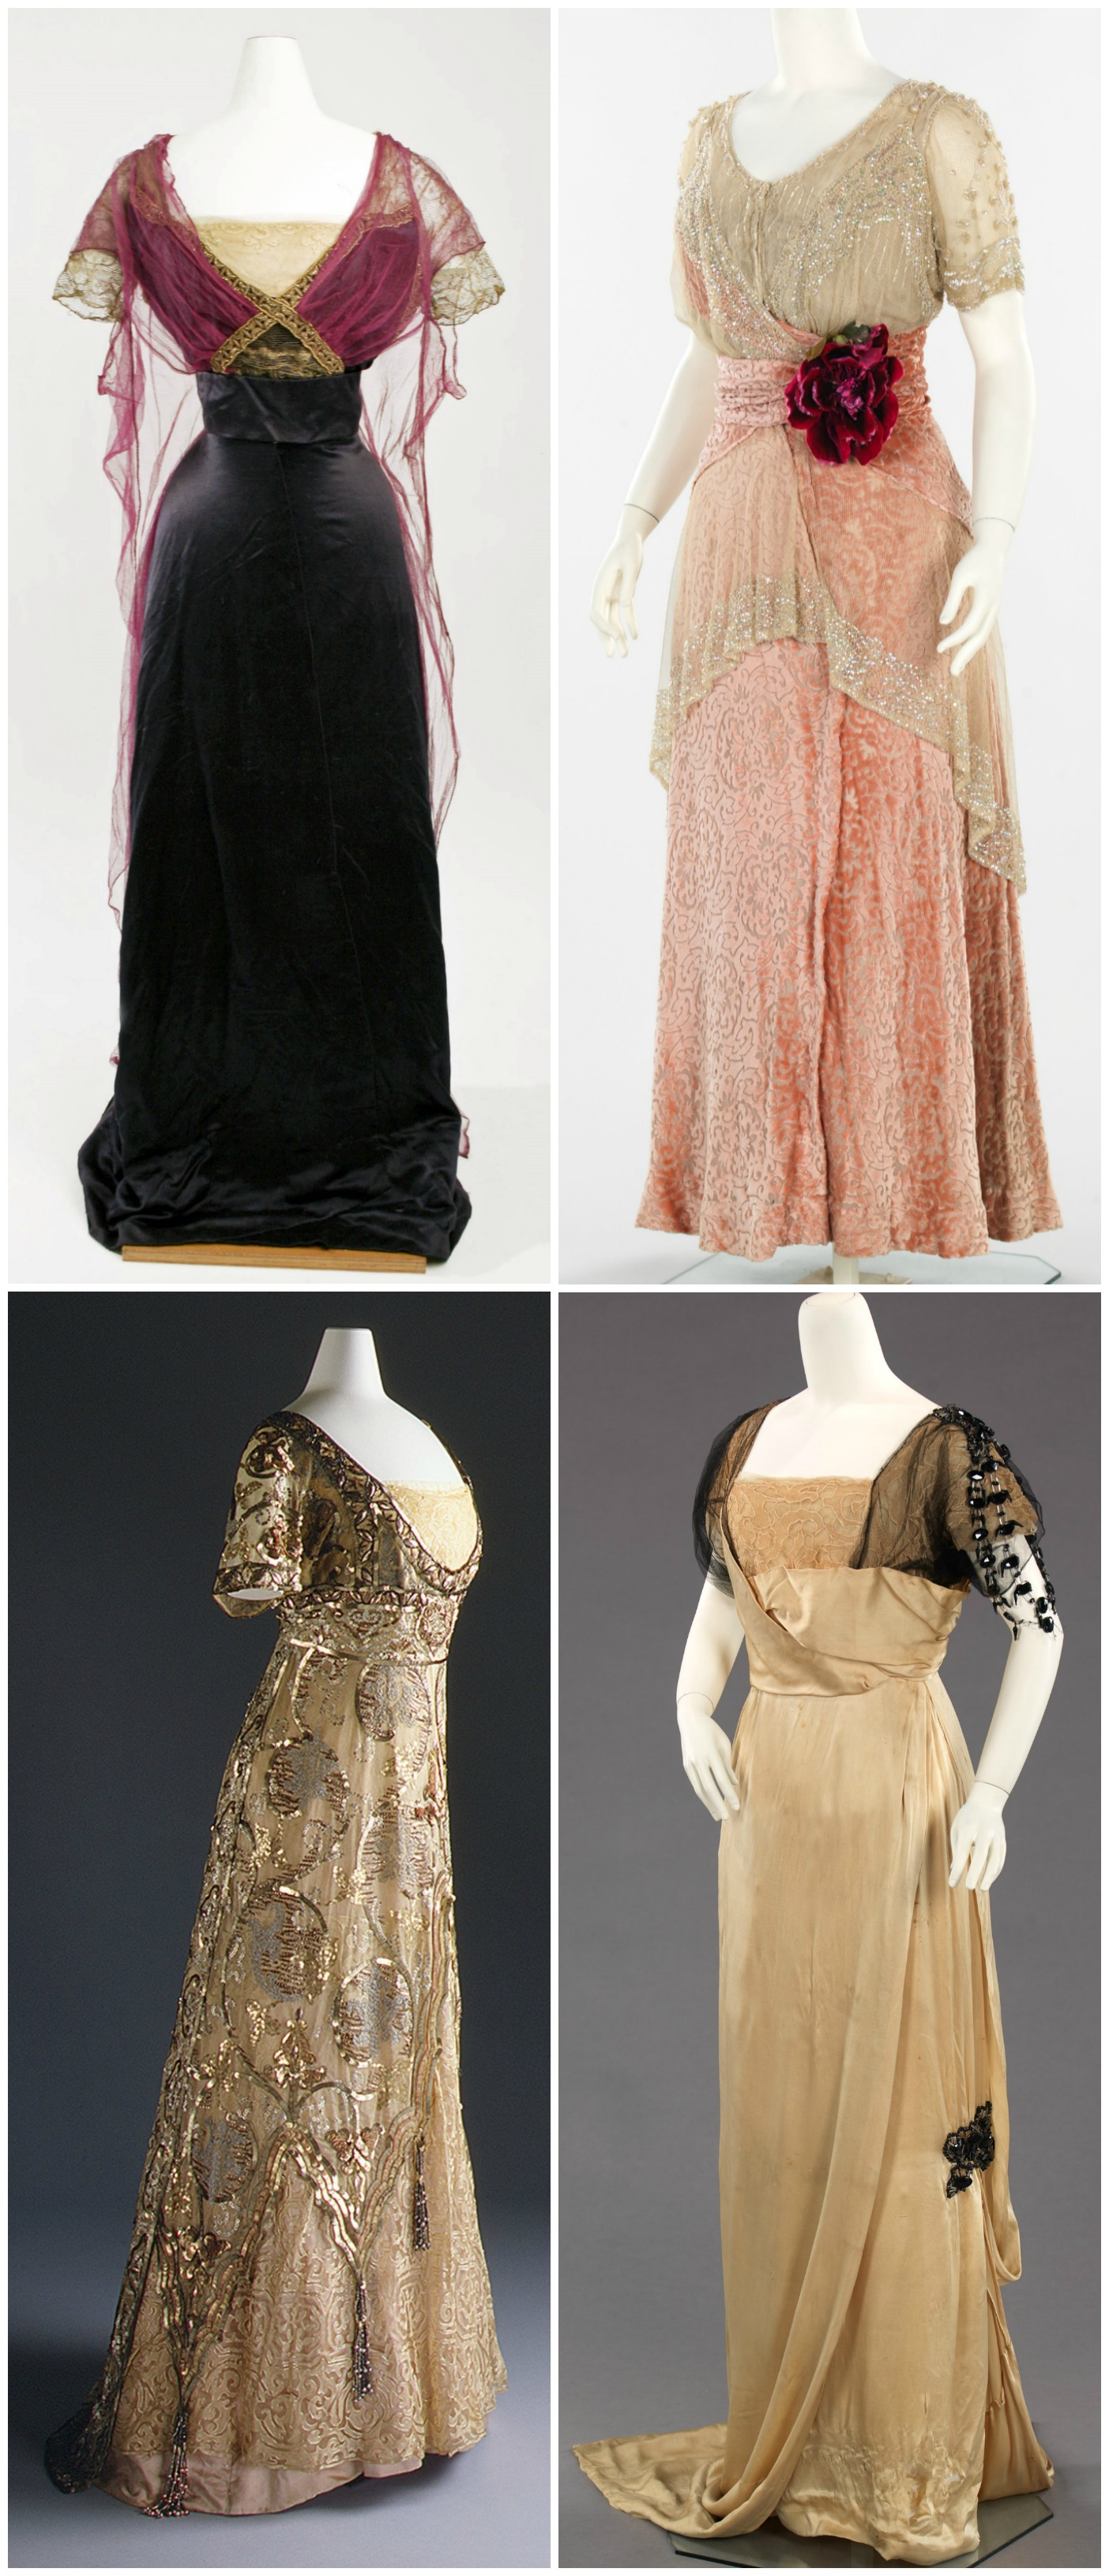 Titanic Dresses. clockwise from top left Callot Soeurs (French), Herbert Luey (American), Callot Soeurs, Paul Poiret (French). Credit metmuseum